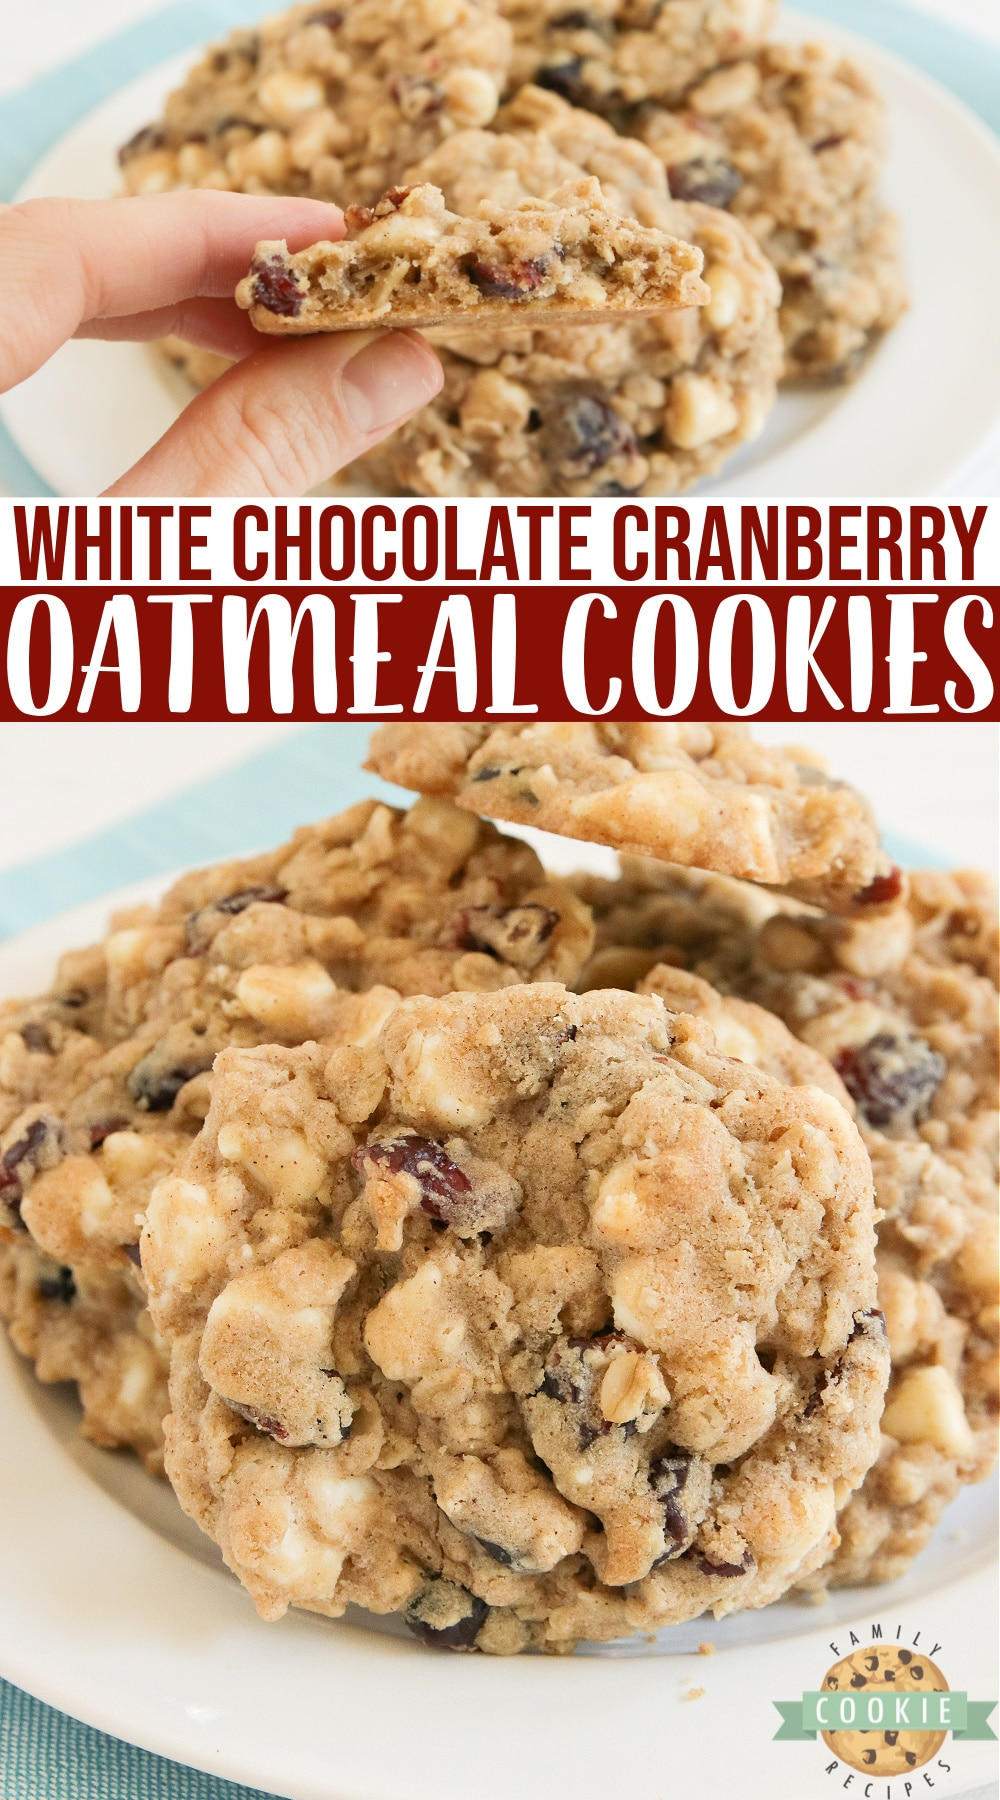 White Chocolate Cranberry Oatmeal Cookies are a classic favorite - soft, chewy oatmeal cookies packed with dried cranberries and white chocolate chips. via @buttergirls